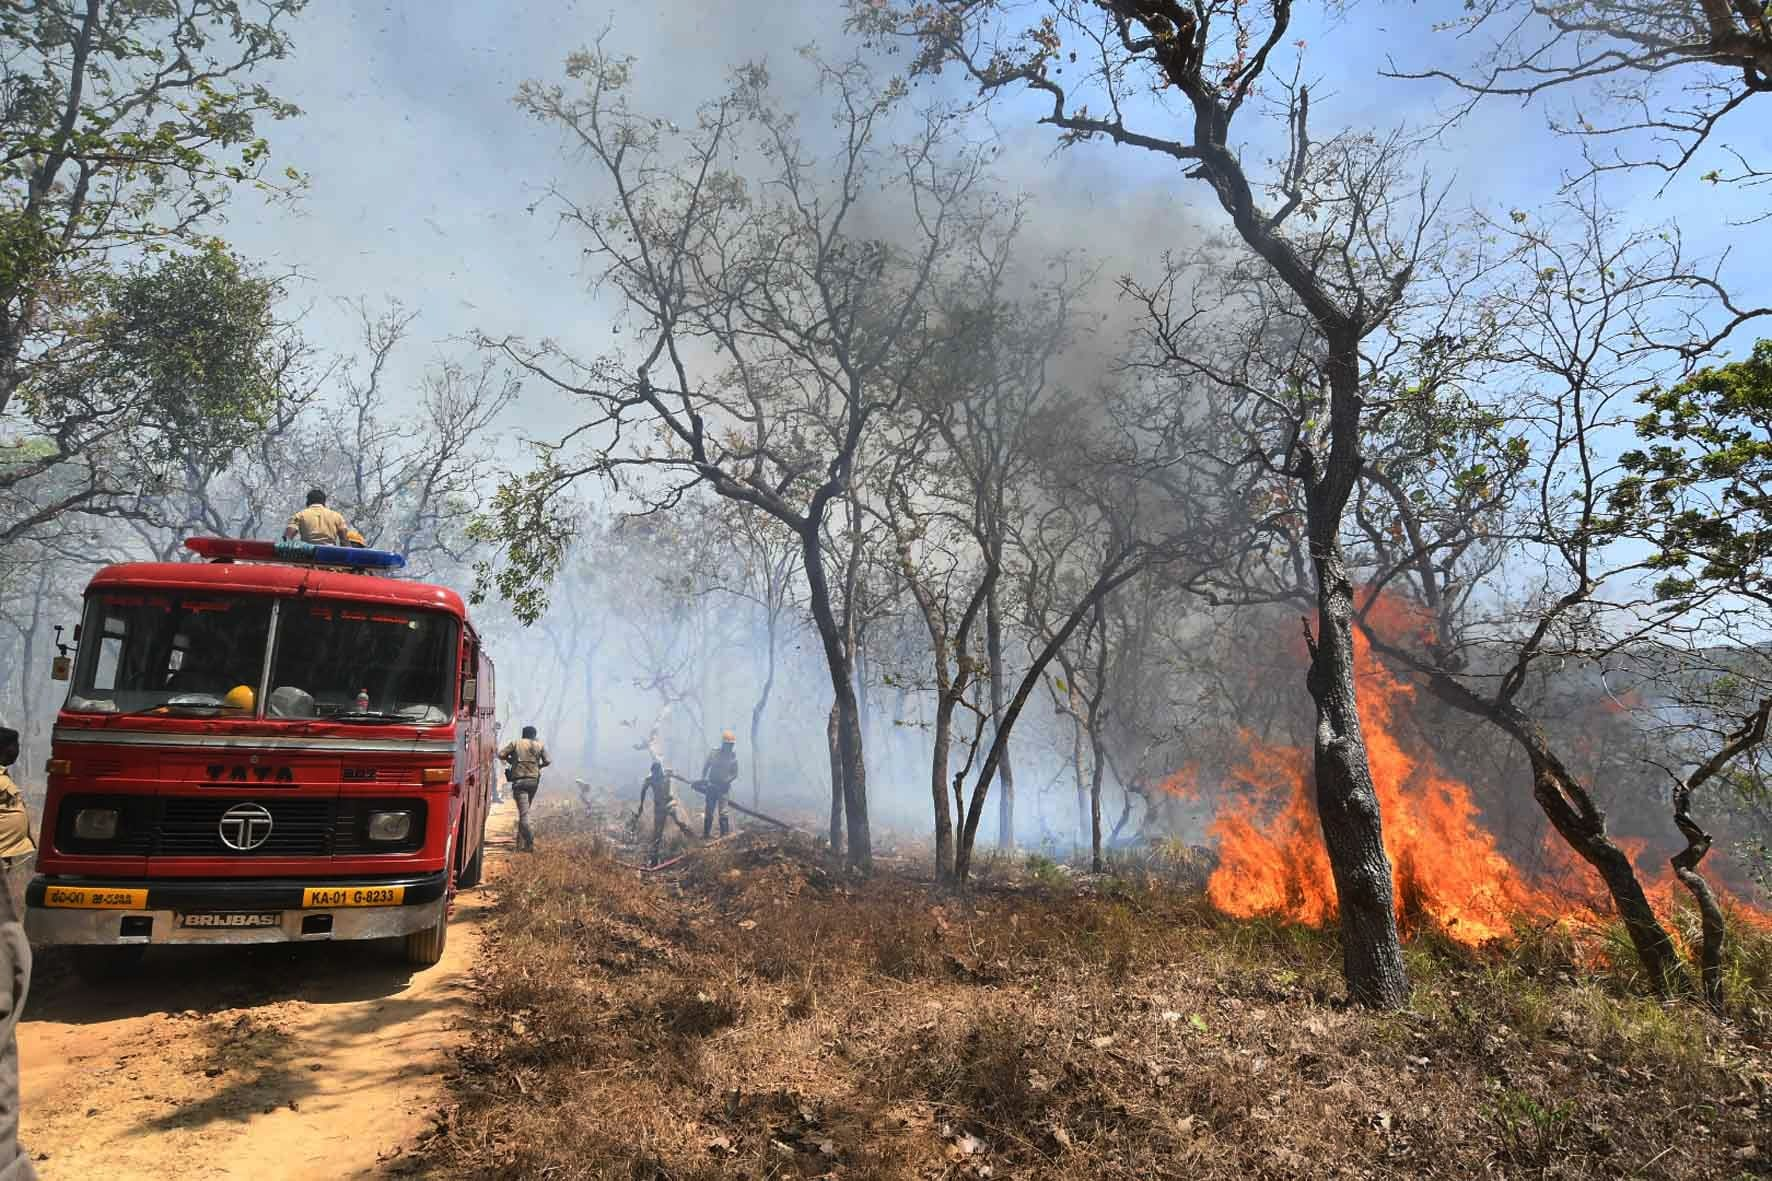 Foresters, along with hundreds of volunteers, made a vain bid to douse the fire that had spread to dangerous proportions, the officials said. (Photo: IANS)